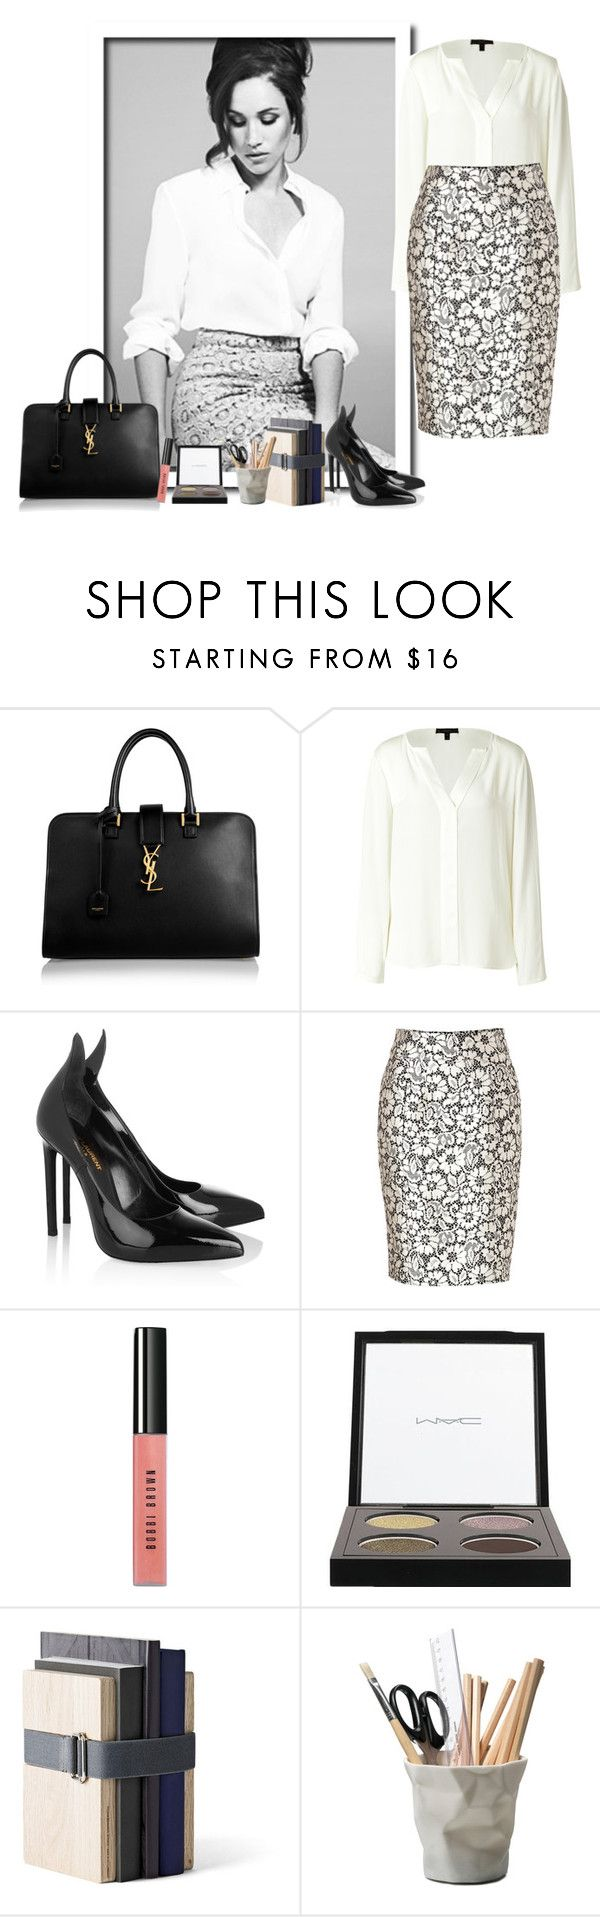 """Rachel Zane, Suits"" by guemara ❤ liked on Polyvore featuring Yves Saint Laurent, Belstaff, Burberry, Bobbi Brown Cosmetics, MAC Cosmetics, Menu, ESSEY, Suits and rachelzane"